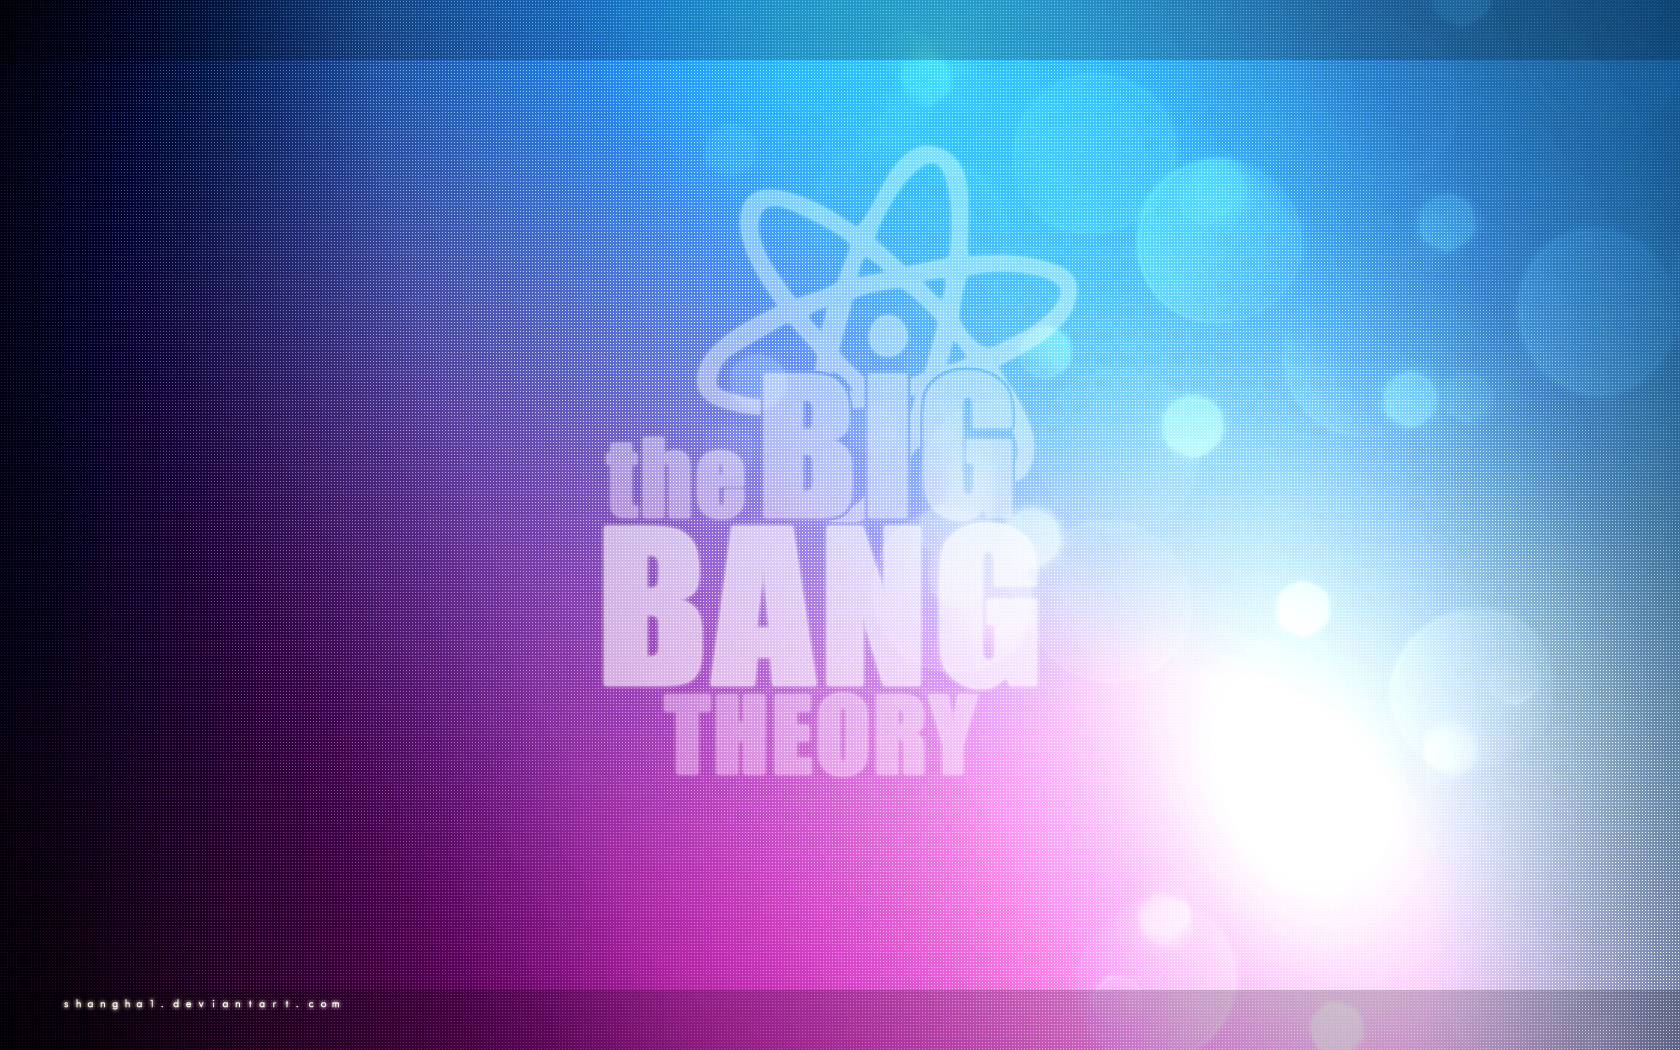 The Big Bang Theory by GuesTar on DeviantArt